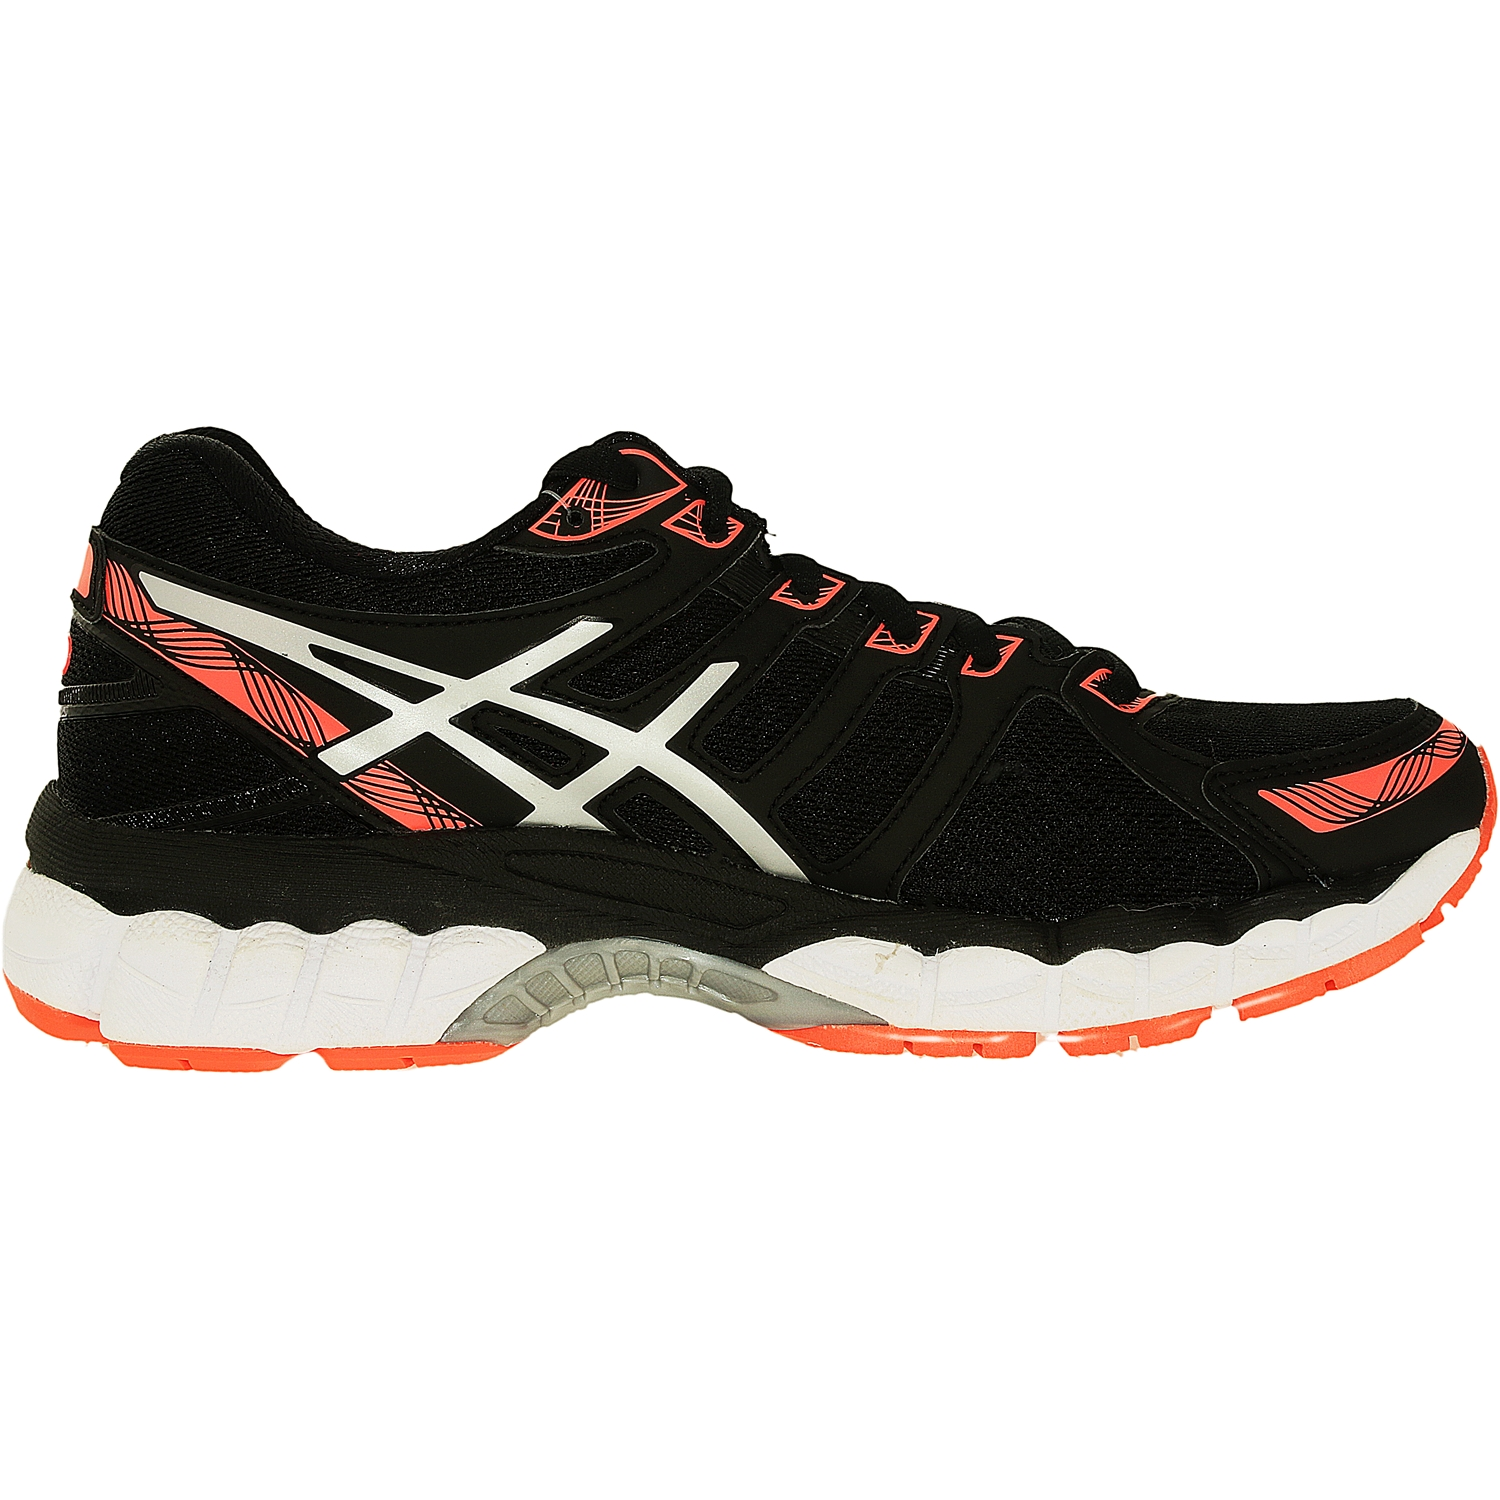 a14670bf3623 ASICS - Asics Women s Gel-Evate 3 Black Silver Flash Coral Ankle-High Running  Shoe - 8M - Walmart.com